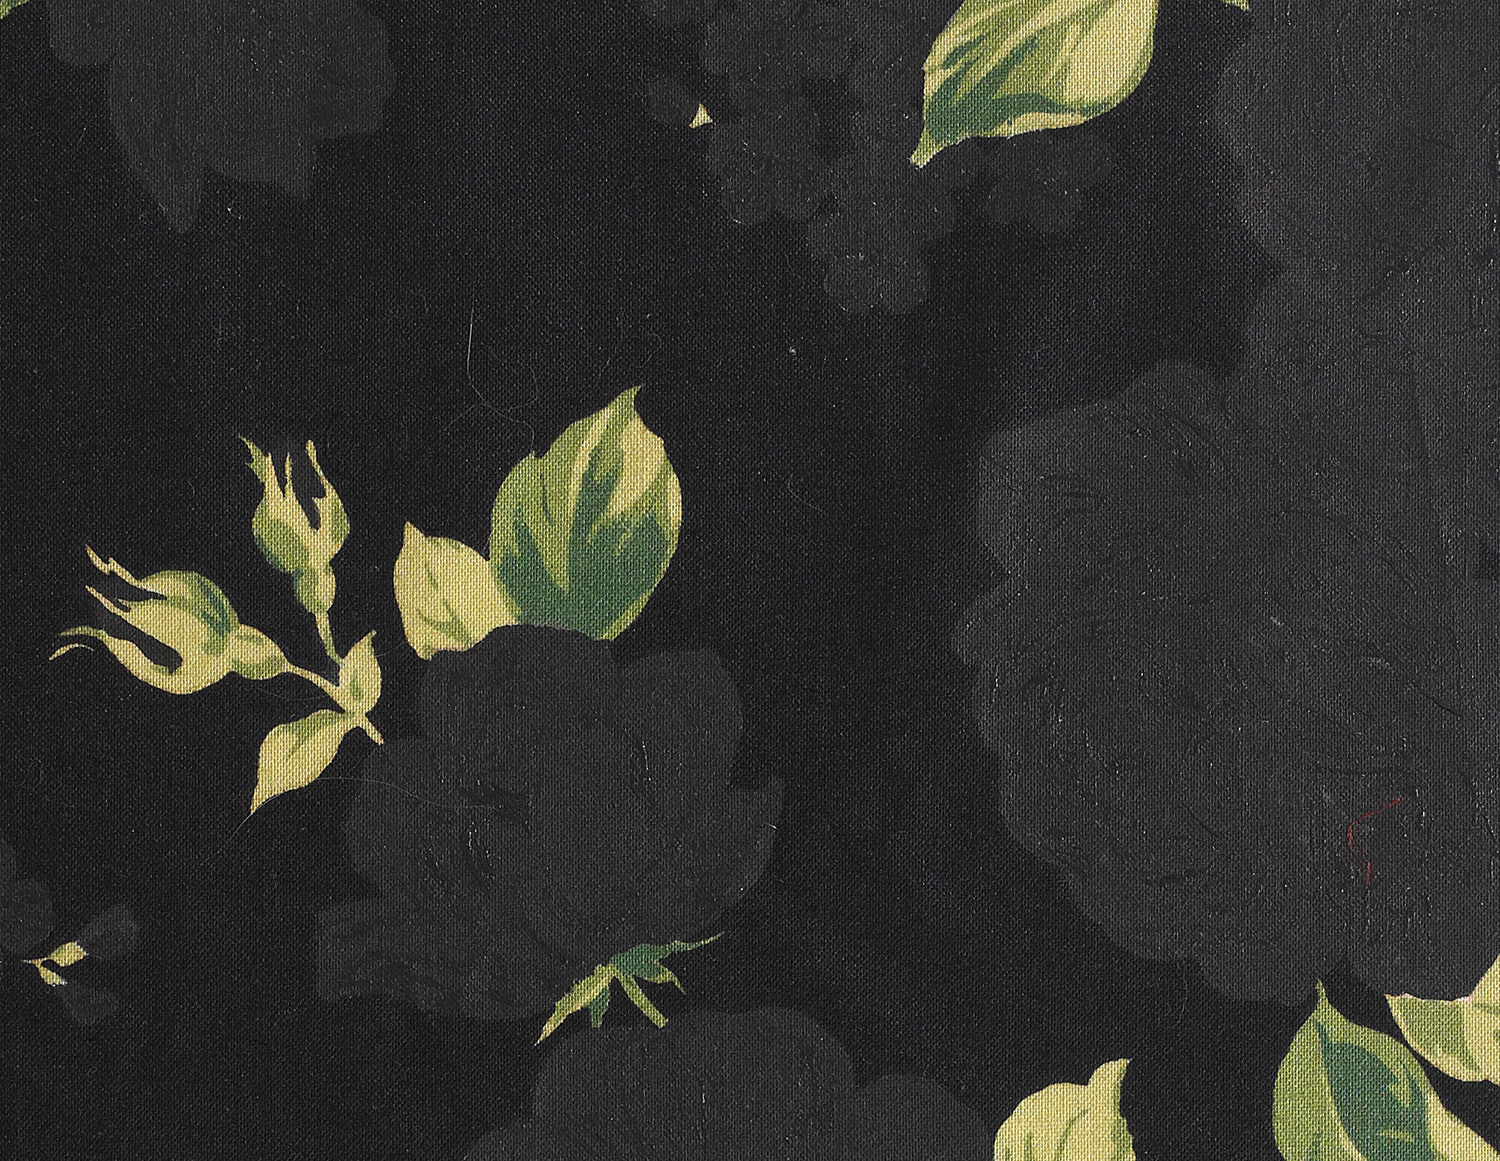 Faulty Samples (Back to Black)  (detail), 2014  Acrylic on found fabric sample